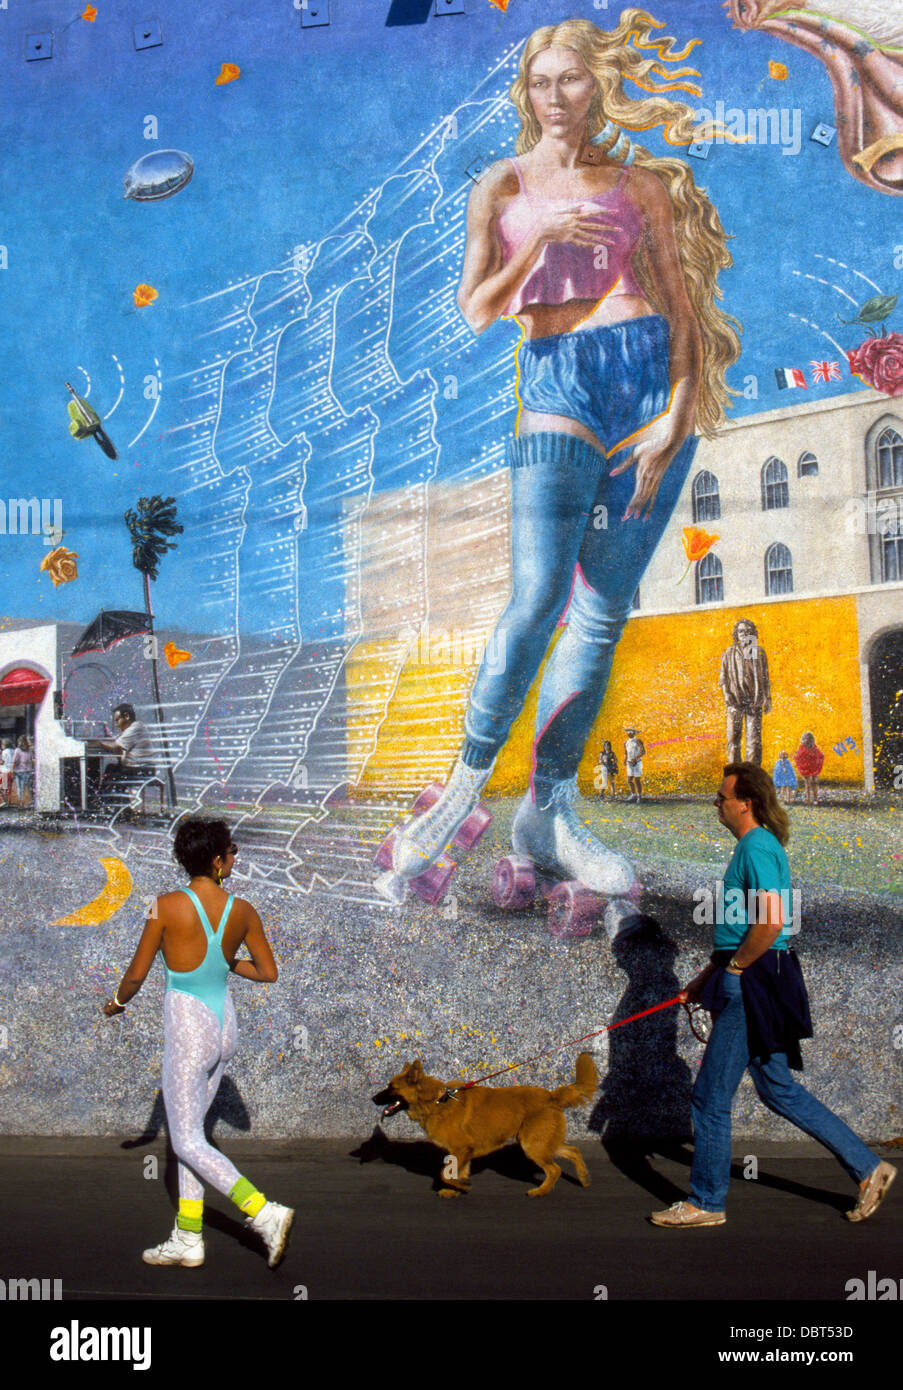 Intriguing Wall Murals Like This Huge Painting Of A Roller Skater